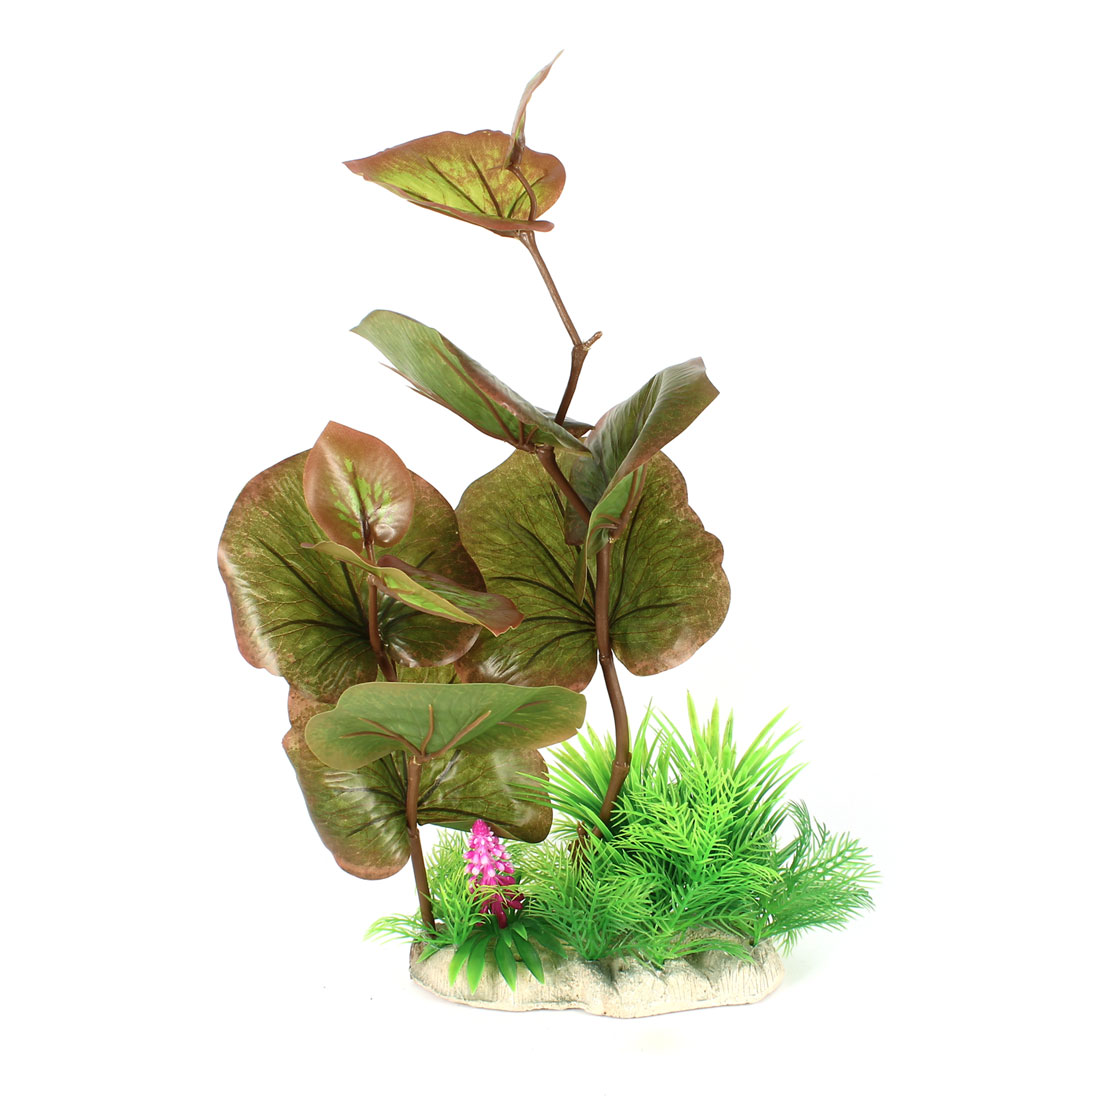 41cm High Fish Tank Manmade Green Plastic Decorative Water Aquaric Plant Grass